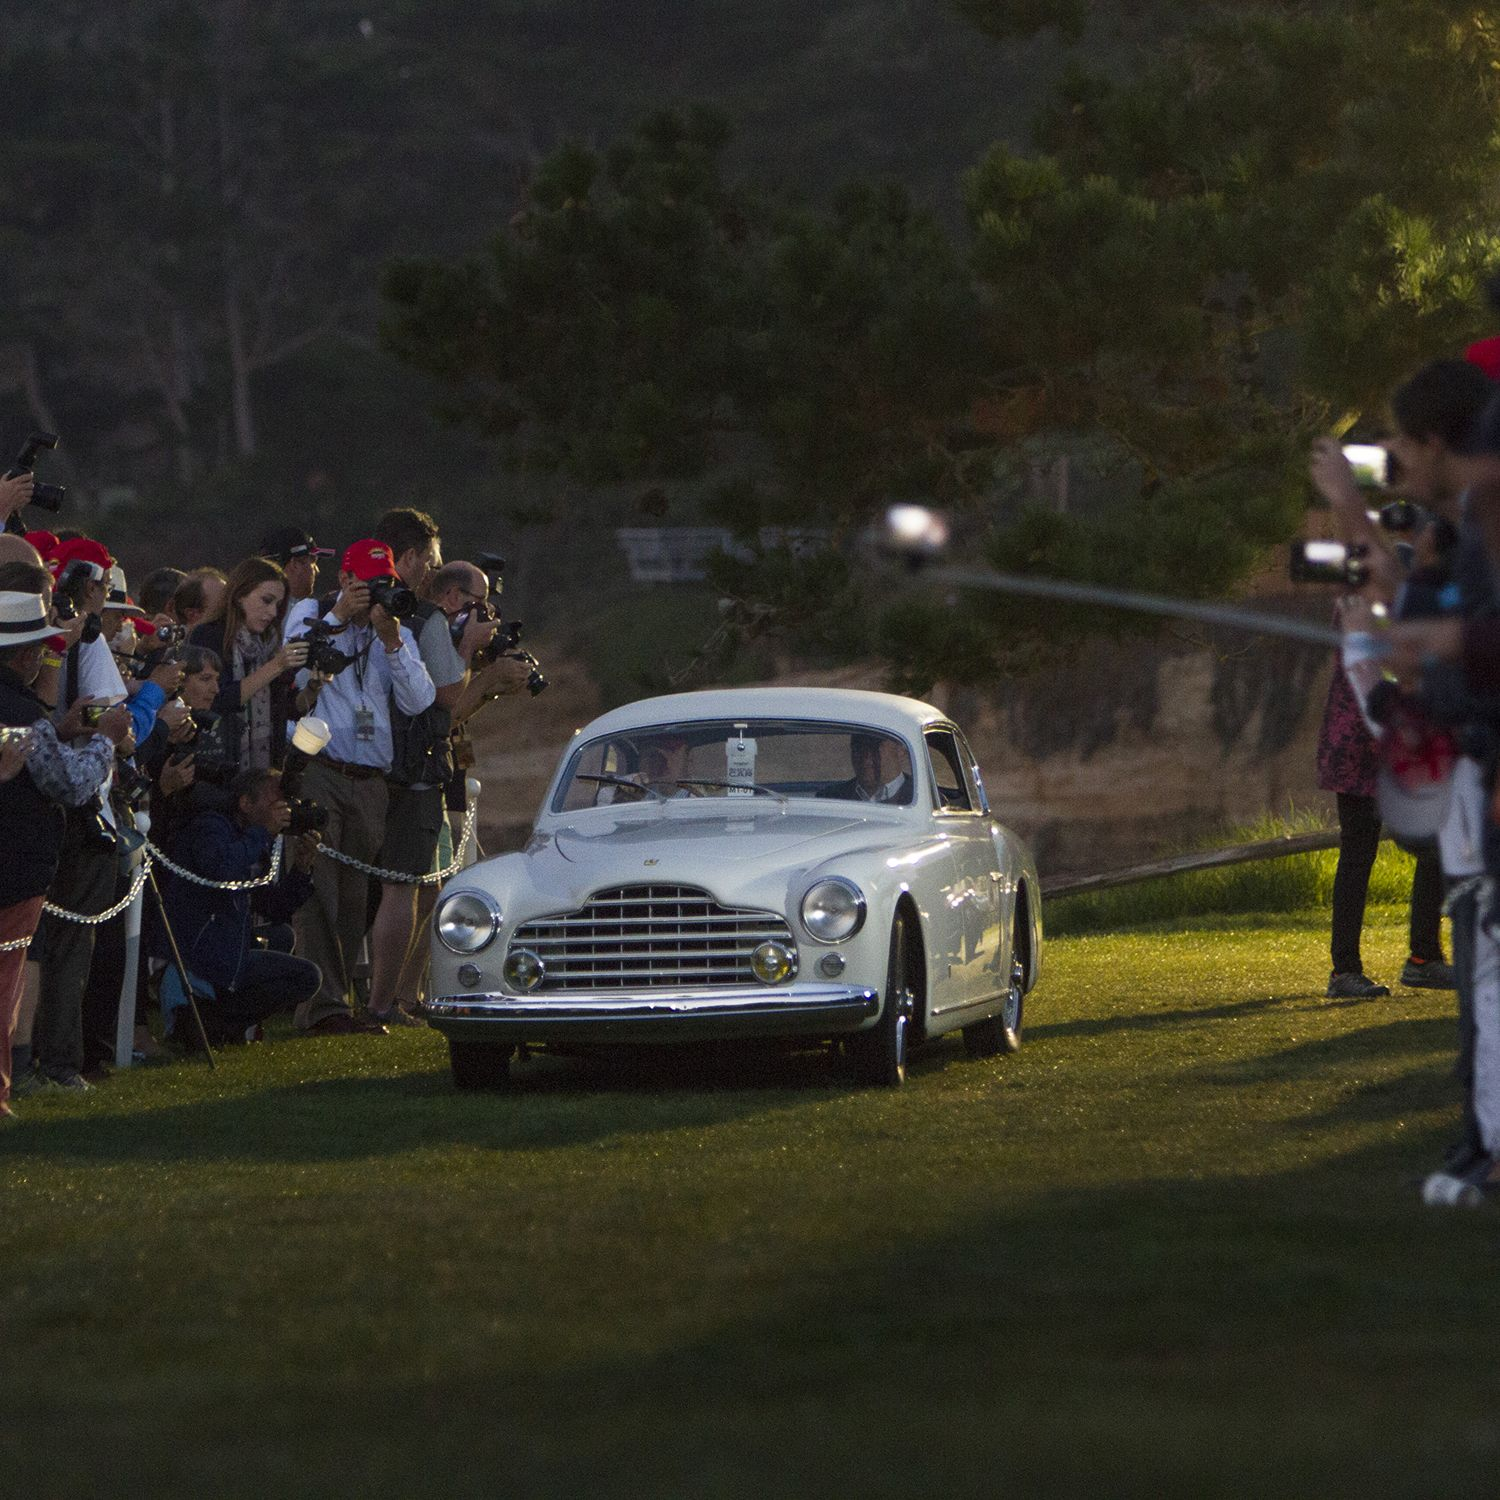 """This 1950 Ferrari 195 INTER Ghia Coupe from Desselgem Belgium opens the parade of classics, pre-dawn, Sunday morning onto the 18th green at The Lodge at Pebble Beach. This annual ritual that has come to be known as """"Dawn Patrol. Every year, the world's auto enthusiasts travel to the Monterey Peninsula to participate in the Car Week that culminates with the luxurious Concours d'Elegance classic car competition. PHOTOGRAPHED SUNDAY AUGUST 16, 2015(Photo by Don Kelsen/Los Angeles Times via Getty Images)"""